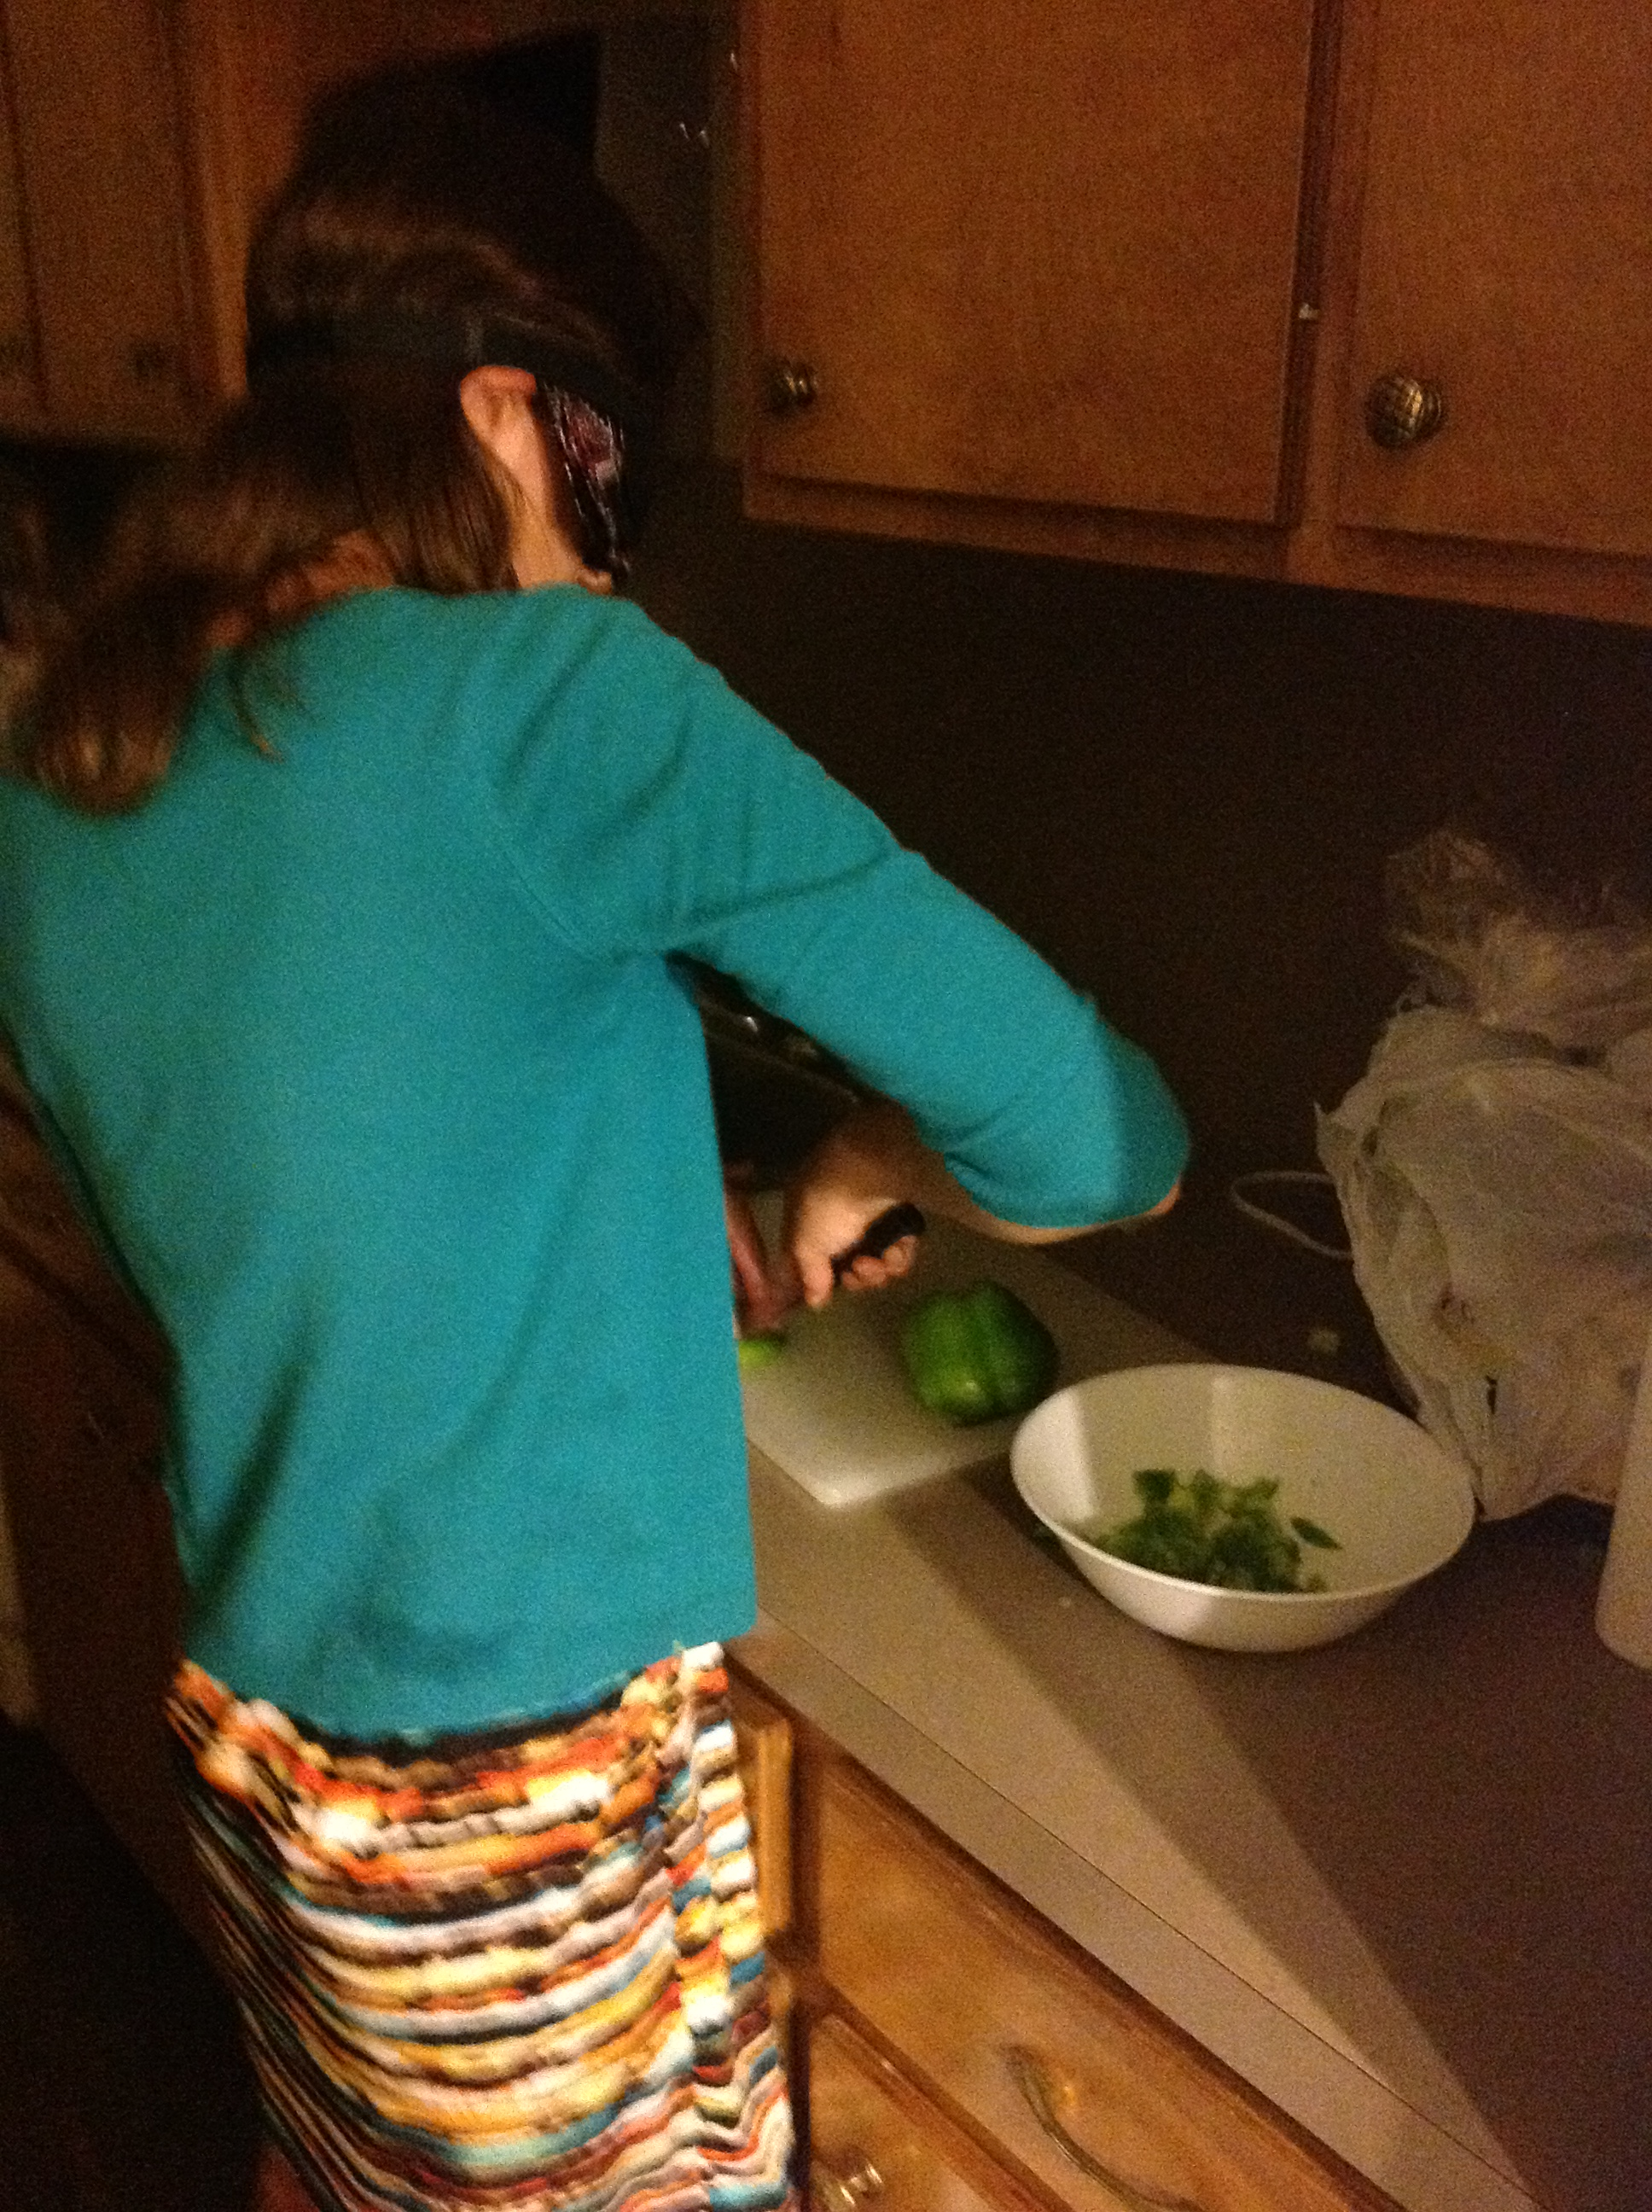 Nicole chops a bell pepper in Home Economics class.